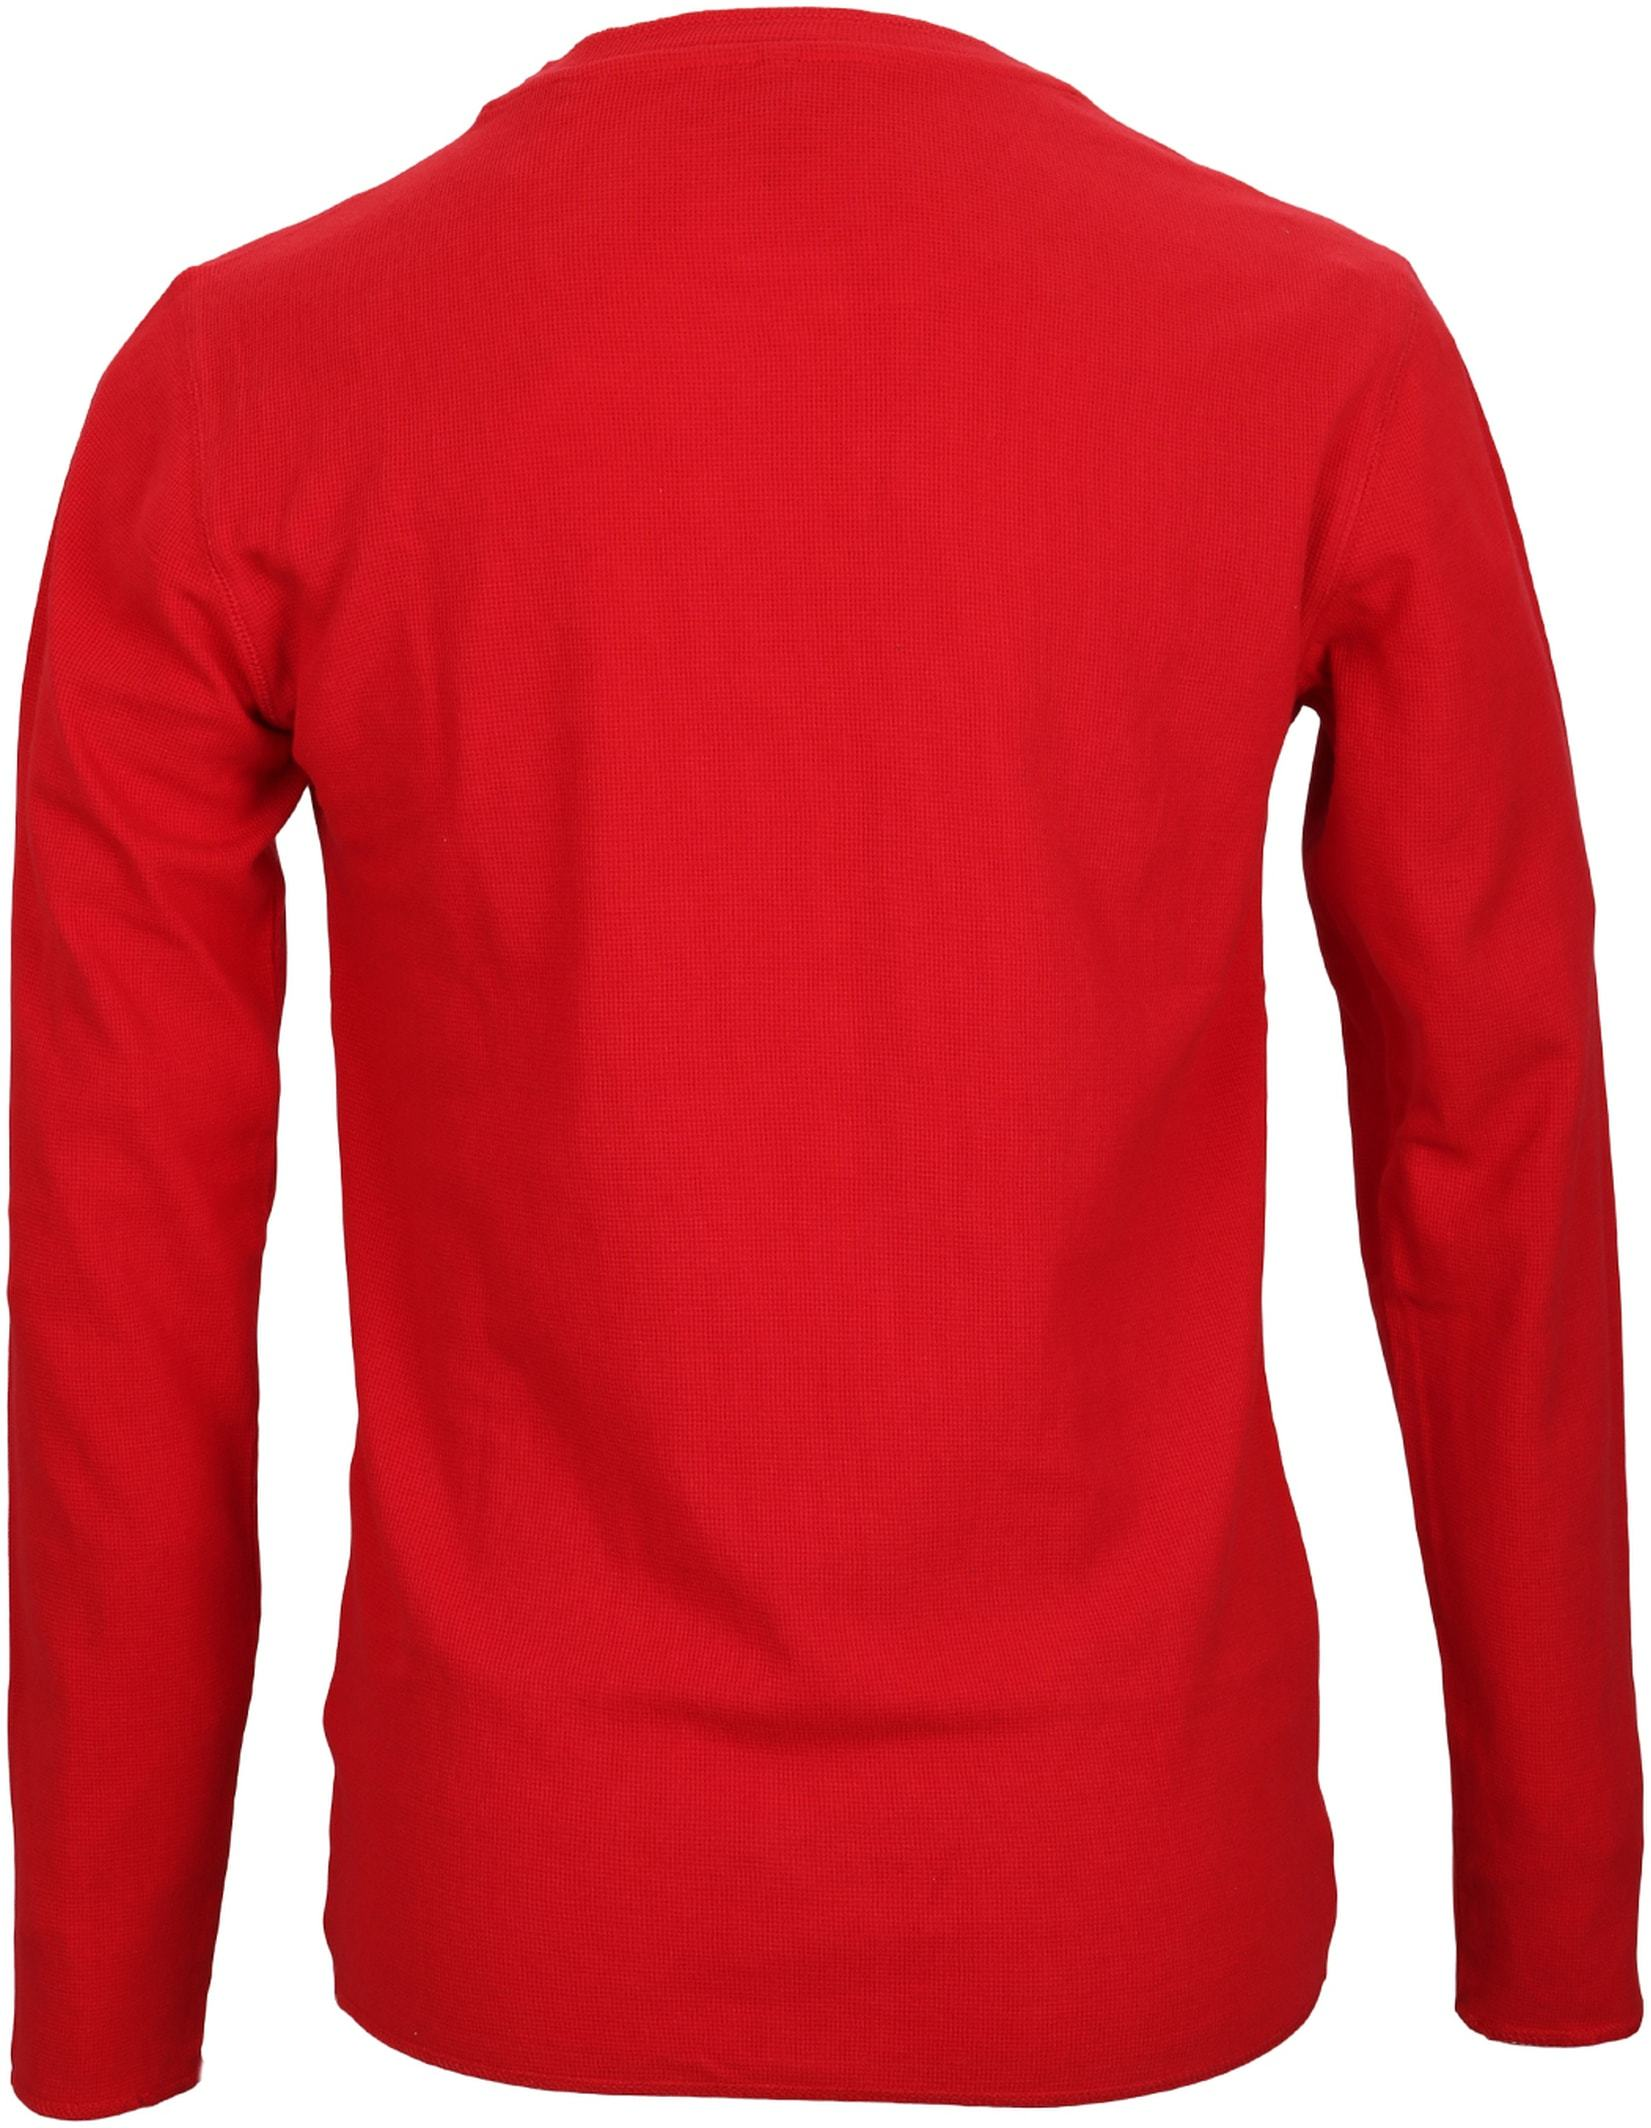 Marc O'Polo Pullover Rot foto 3